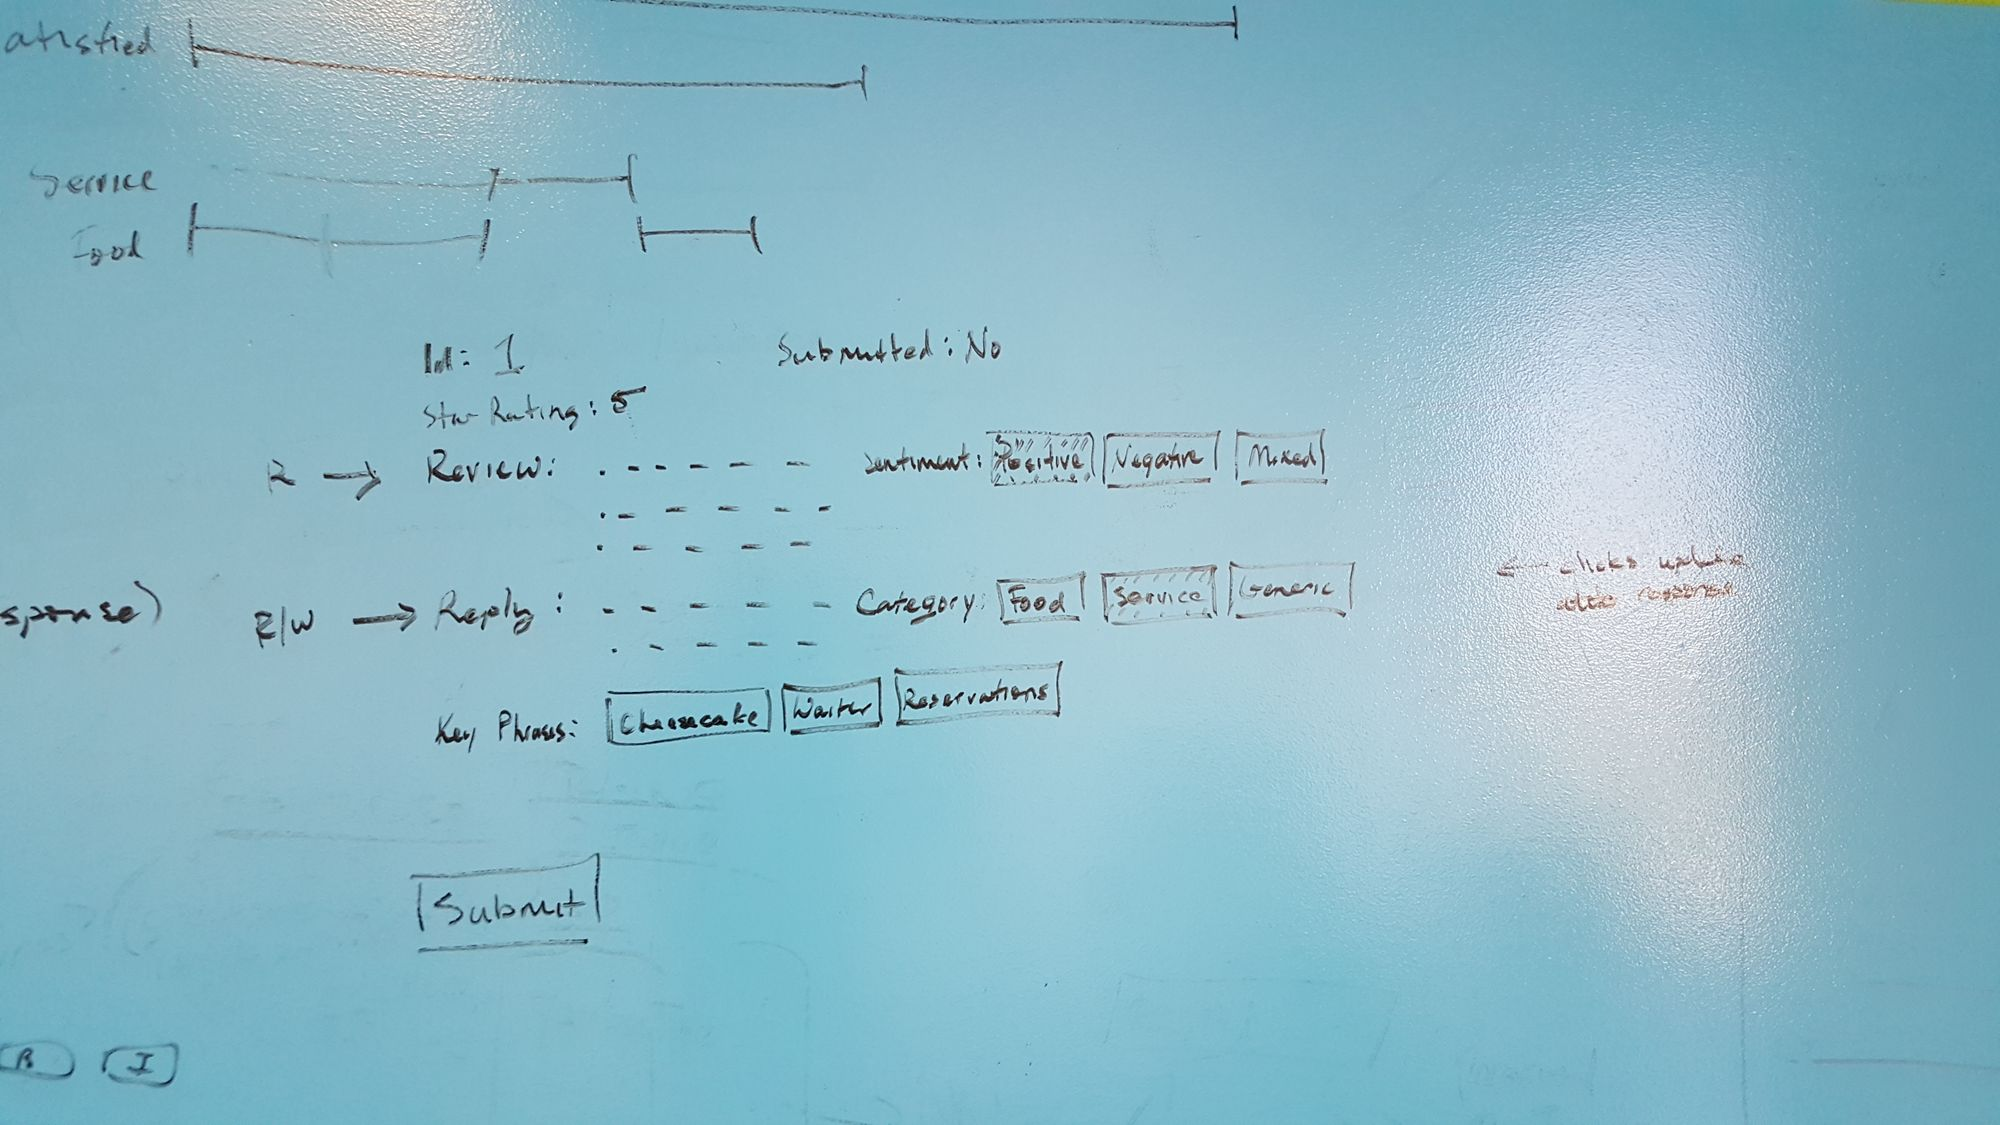 Screenshot of a whiteboard with pieces of an interface roughly mocked up